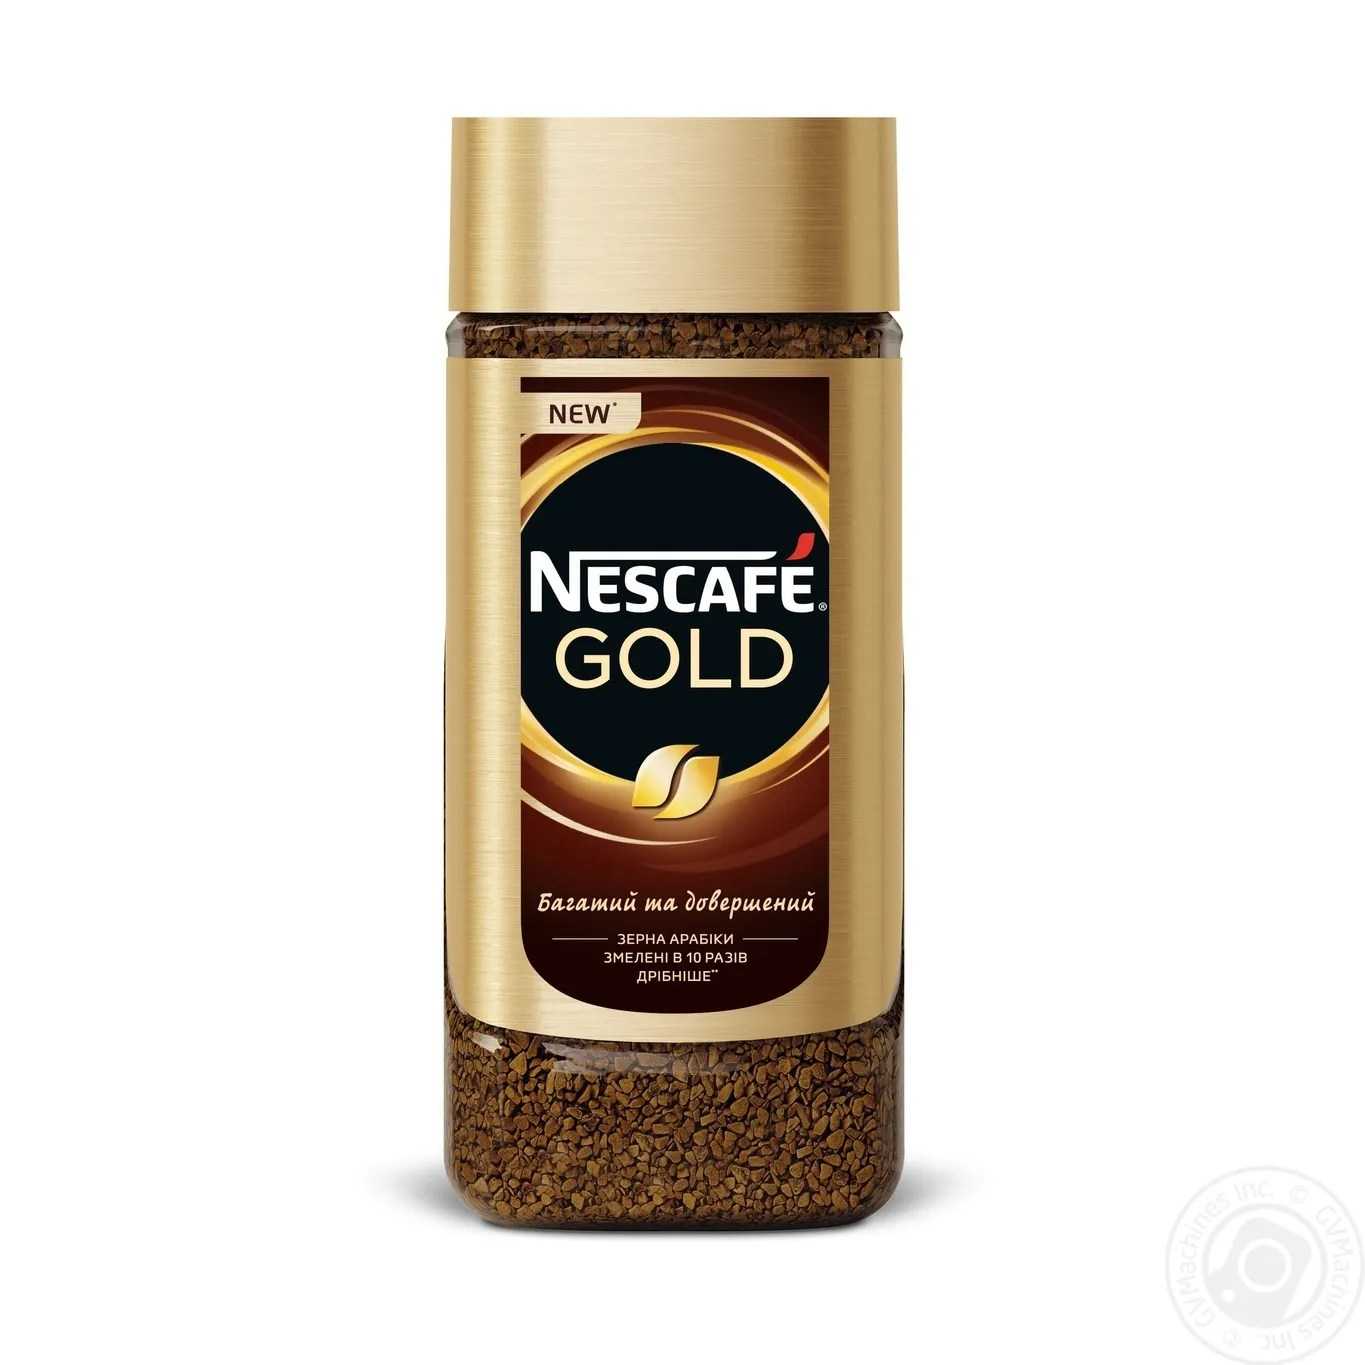 Nescafe Instant Arabica Coffee Nescafe Gold Instant Coffee 200g Drinks Coffee